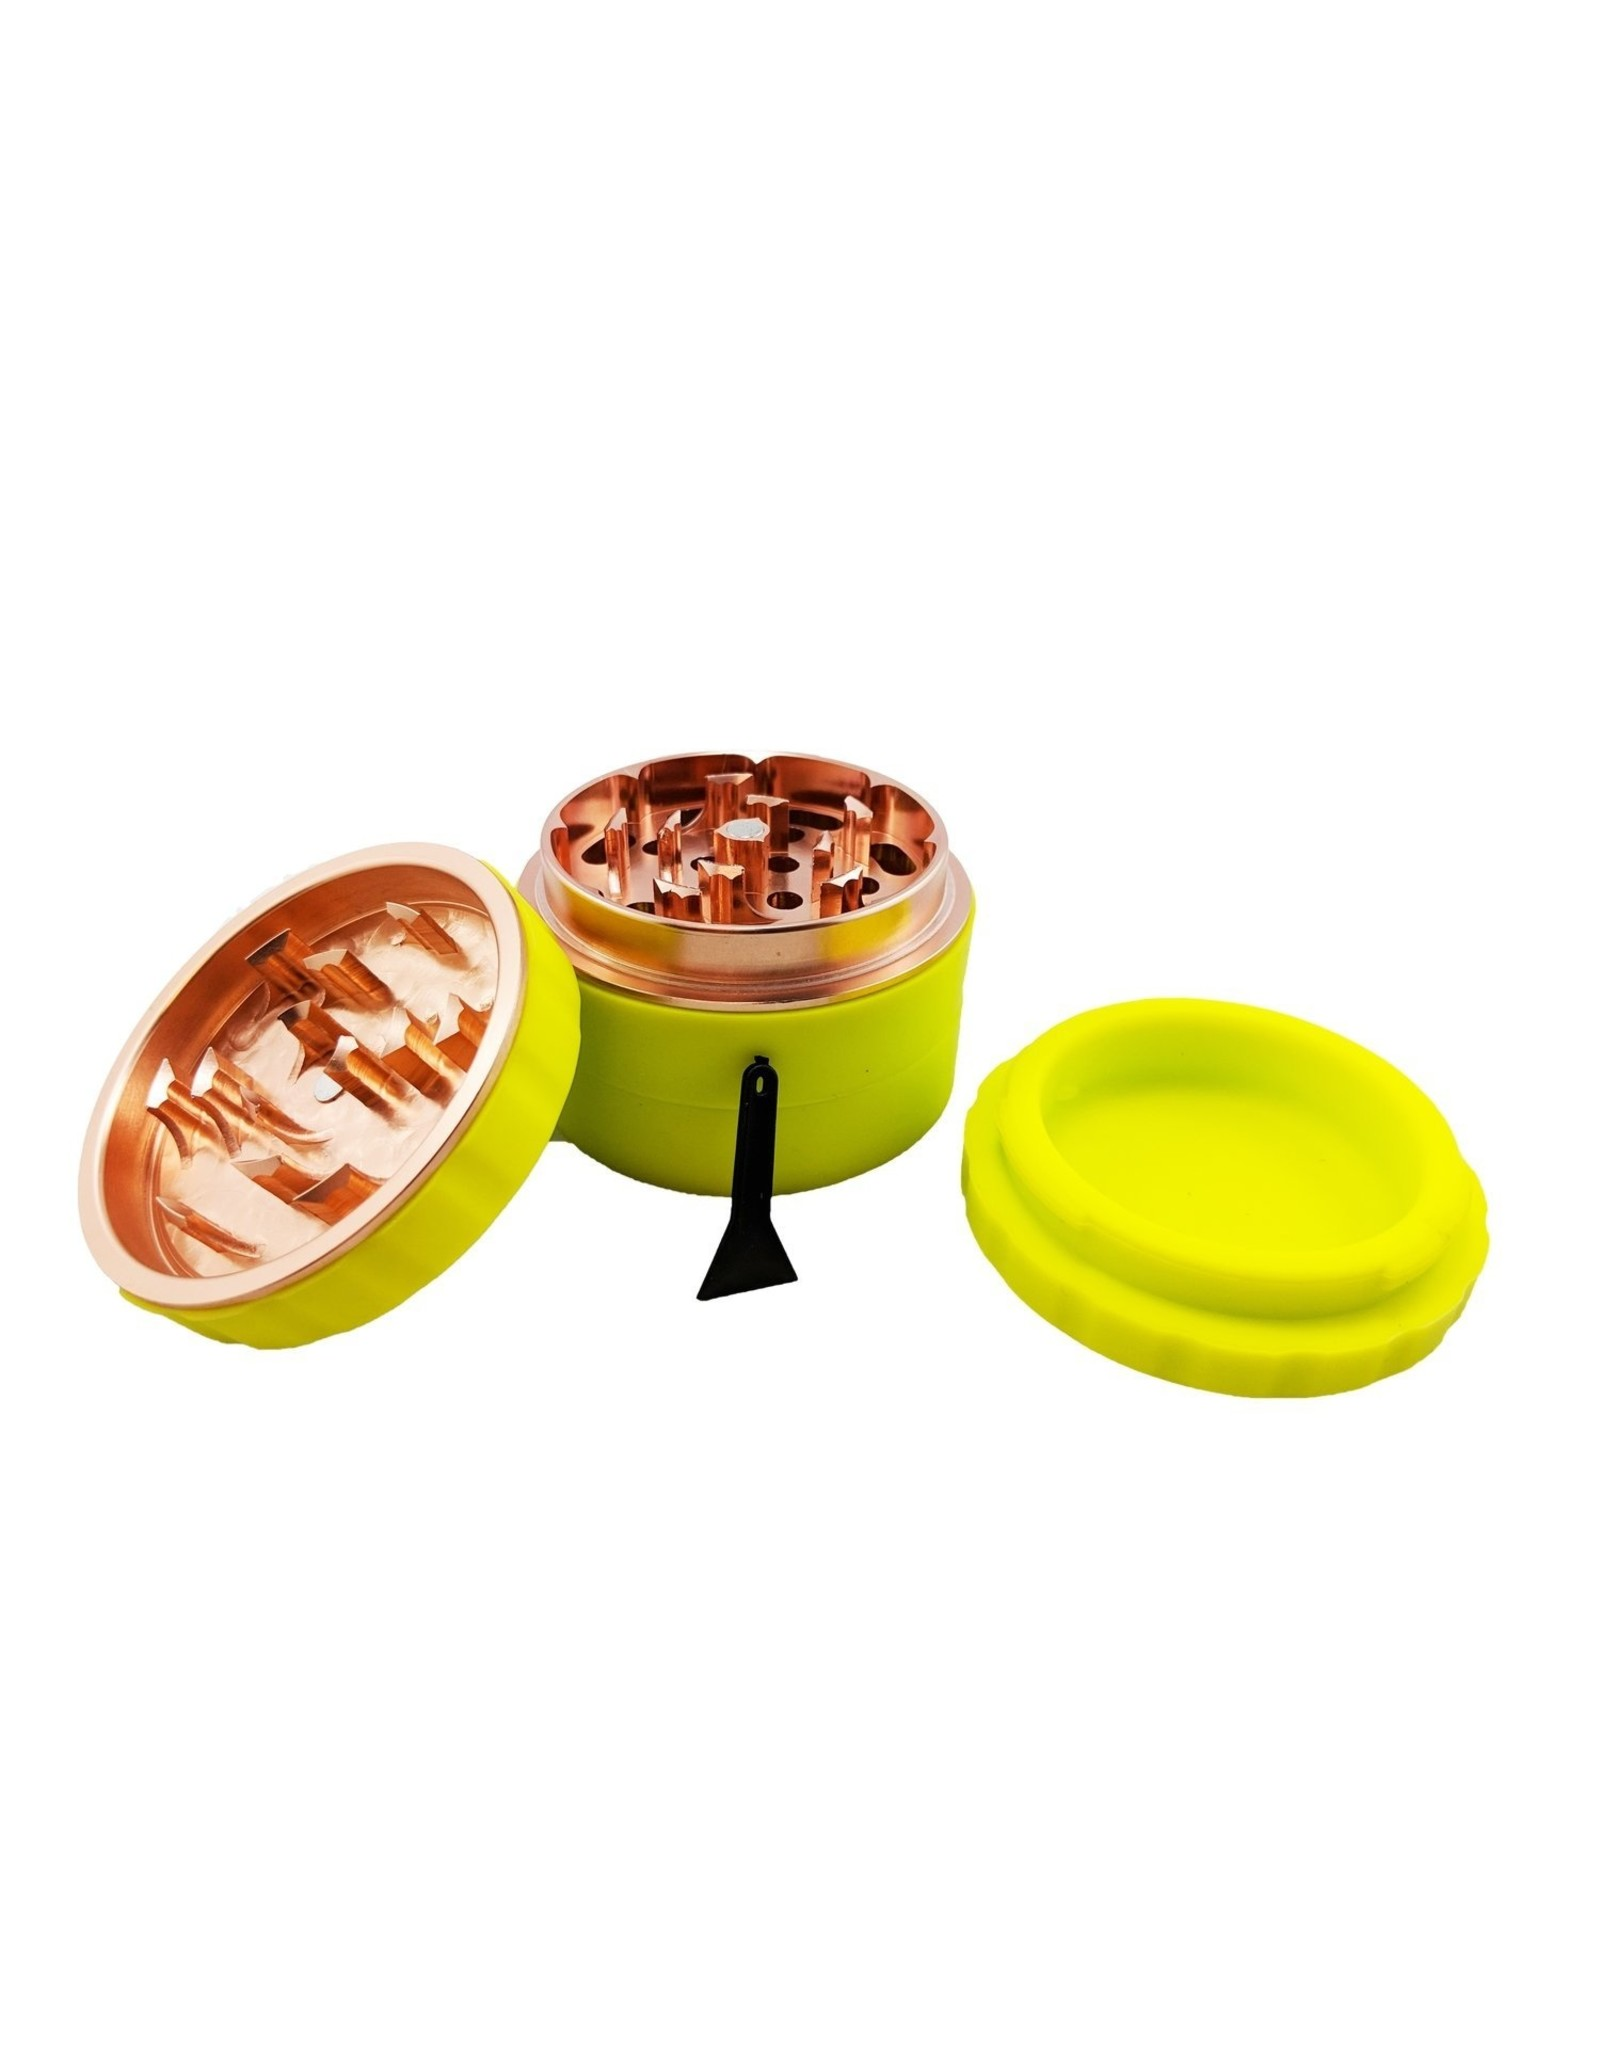 GRIND STONE 4 PCS SILICONE GRINDER 51MM - YELLOW